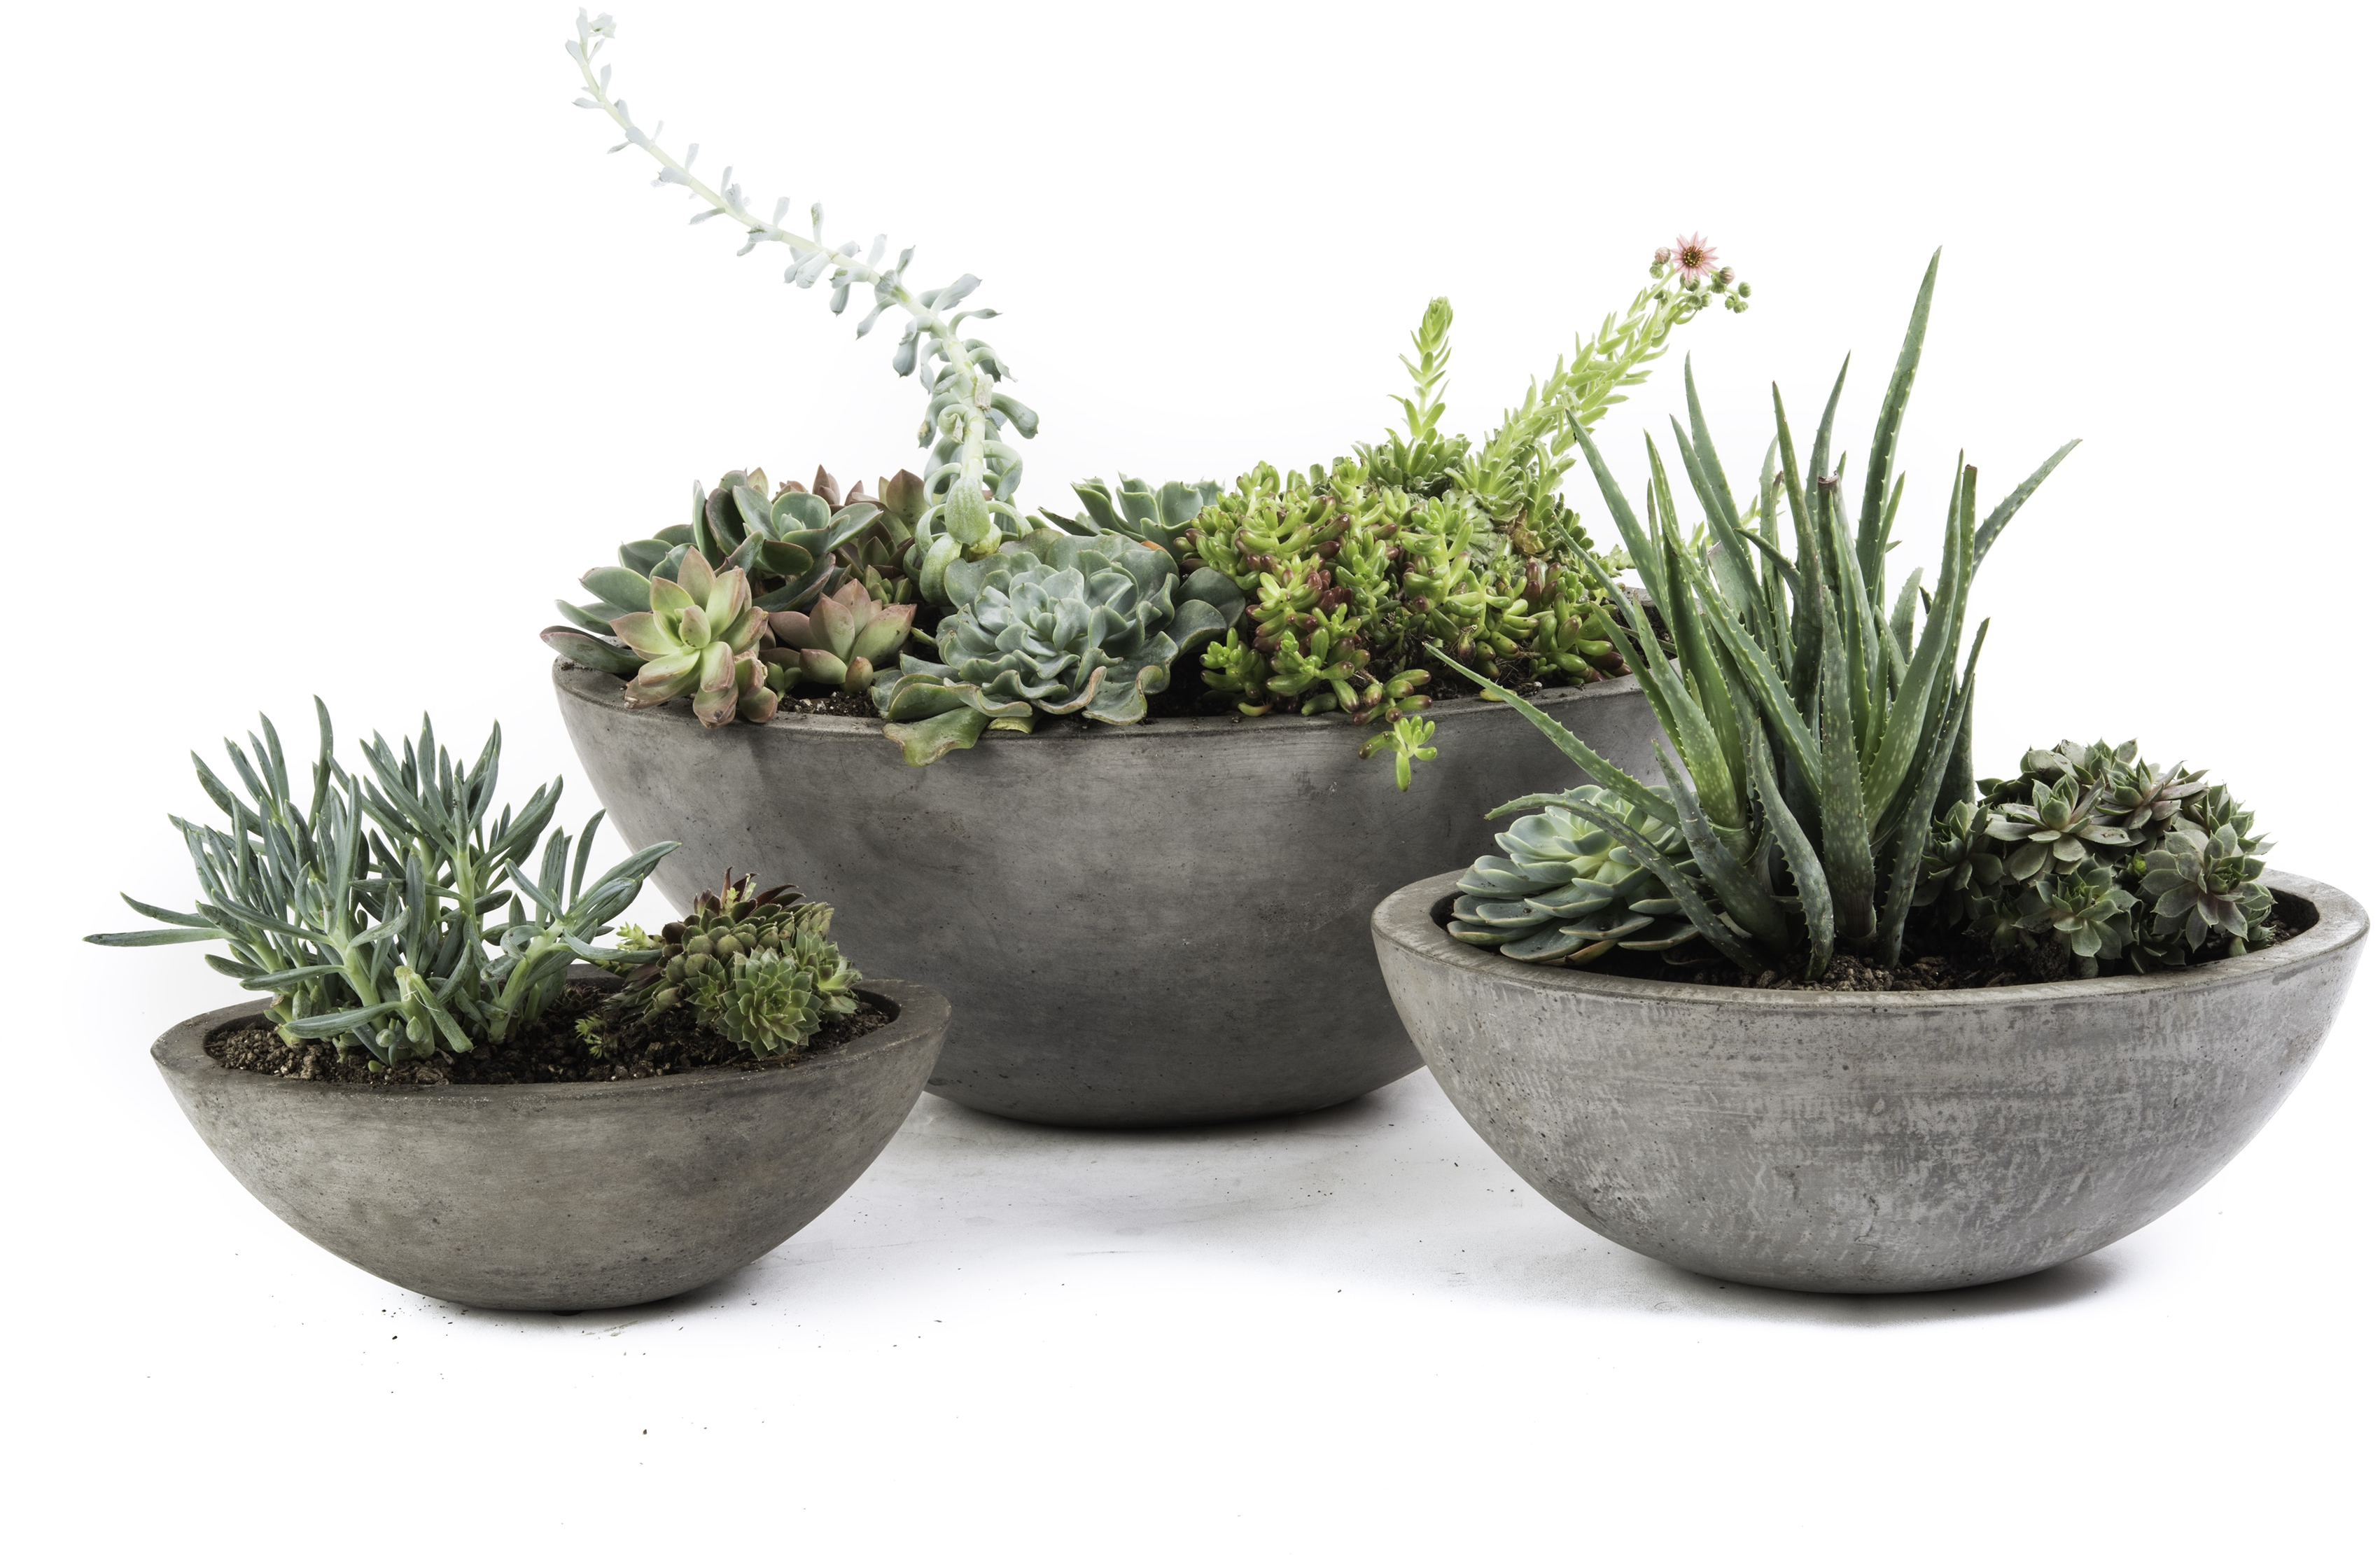 Planter For Herbs Details About Flower Planter Set Of 3 Eco Concrete Pot Soil Plant Care Herbs Garden Gift Home